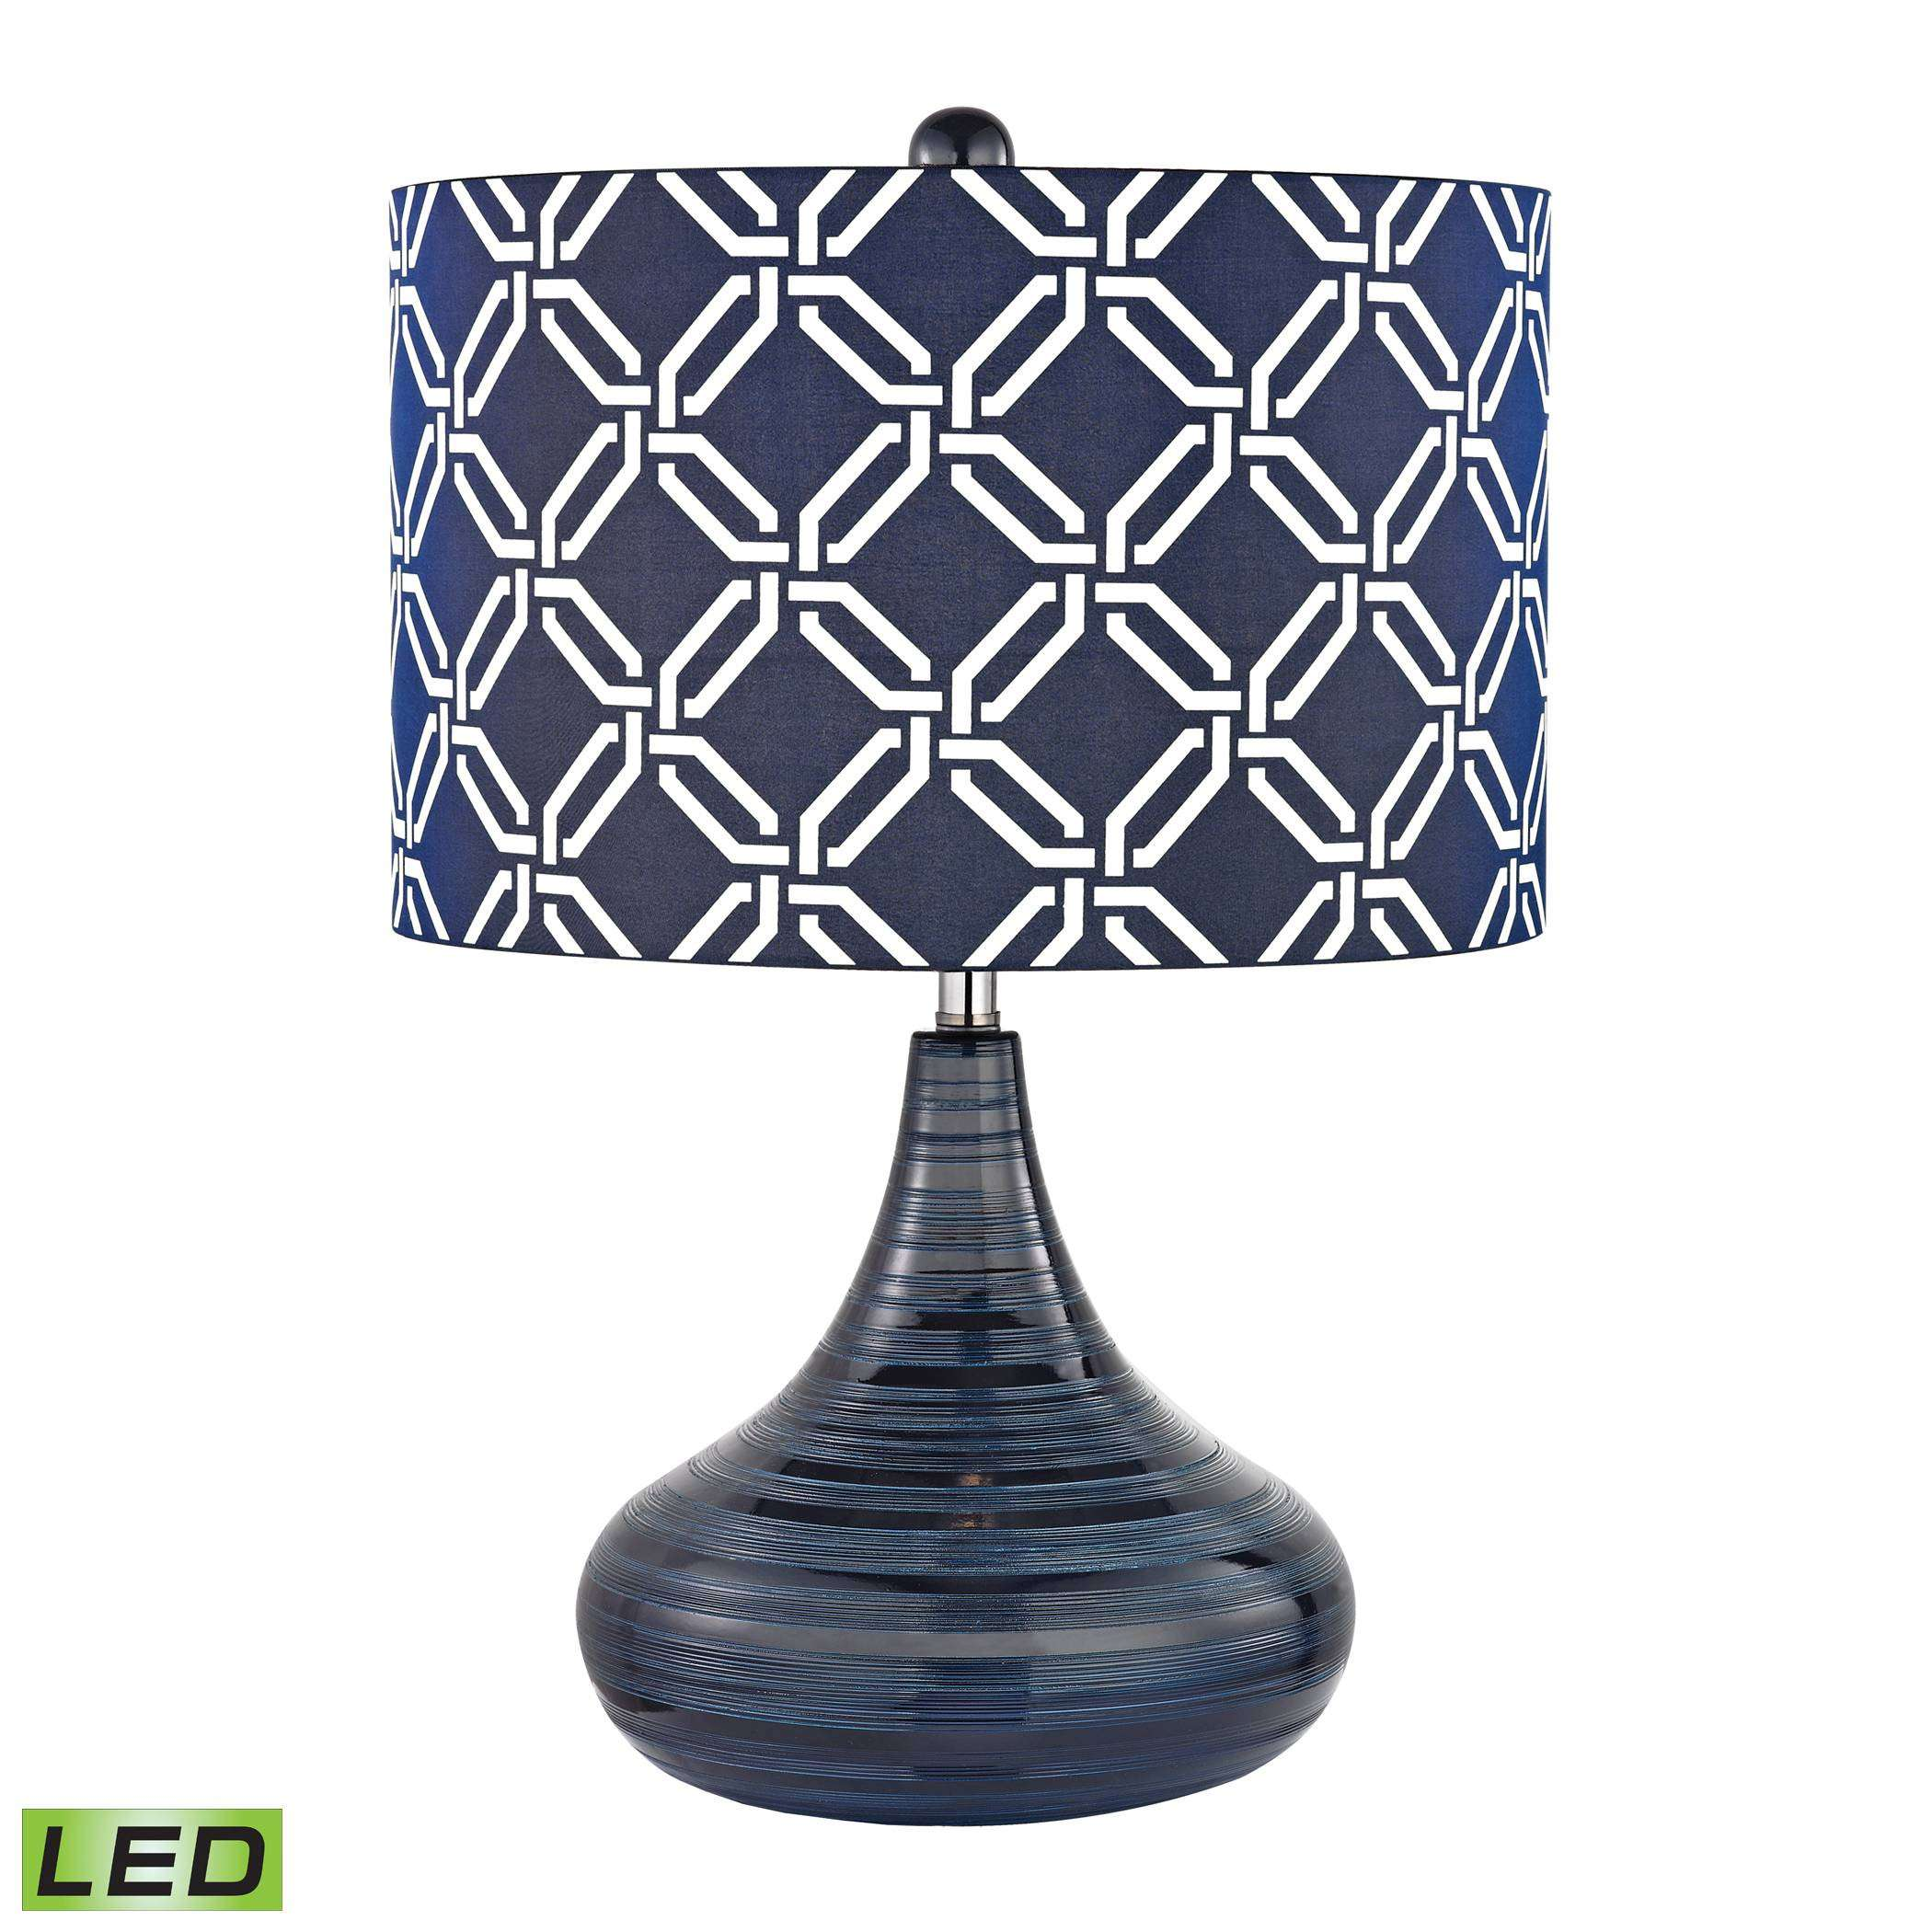 Peebles LED Table Lamp In Navy Blue With Blue With White Pattern Print - Shade